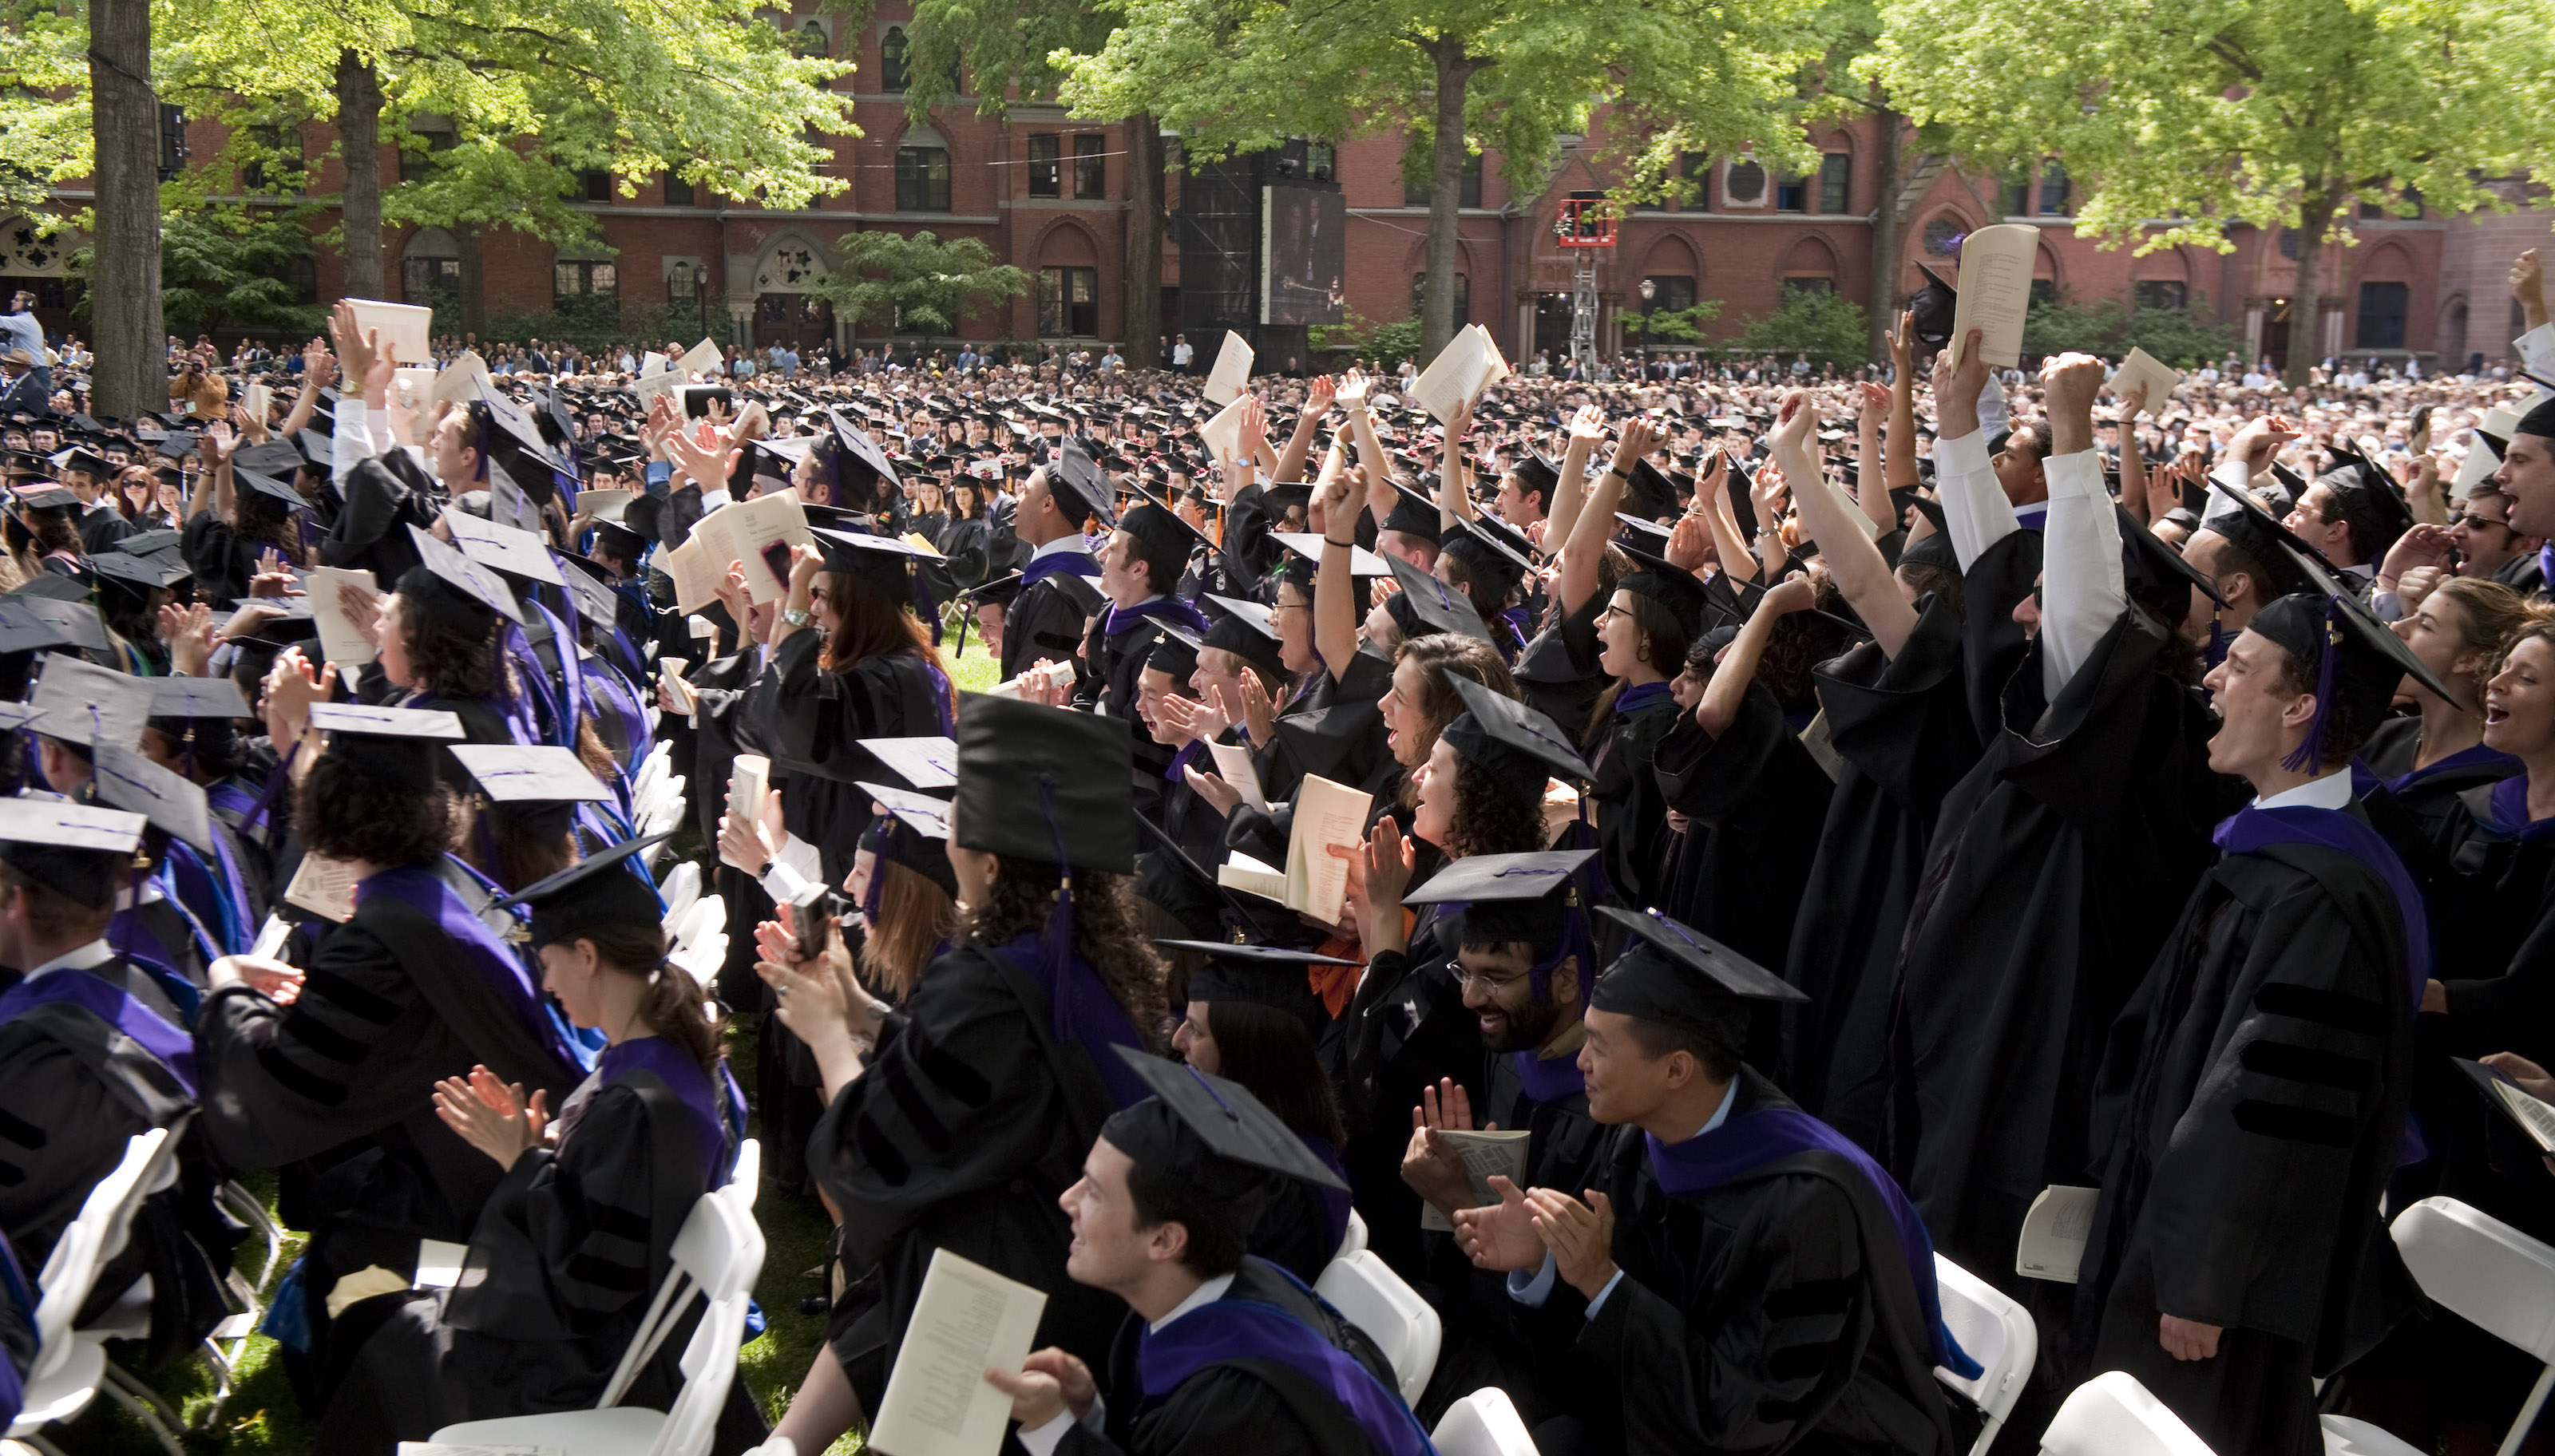 Graduates of the Law School celbrate during Yale Commencement in New Haven, Conn. Monday May 25, 2009. (AP Photo/Douglas Healey).